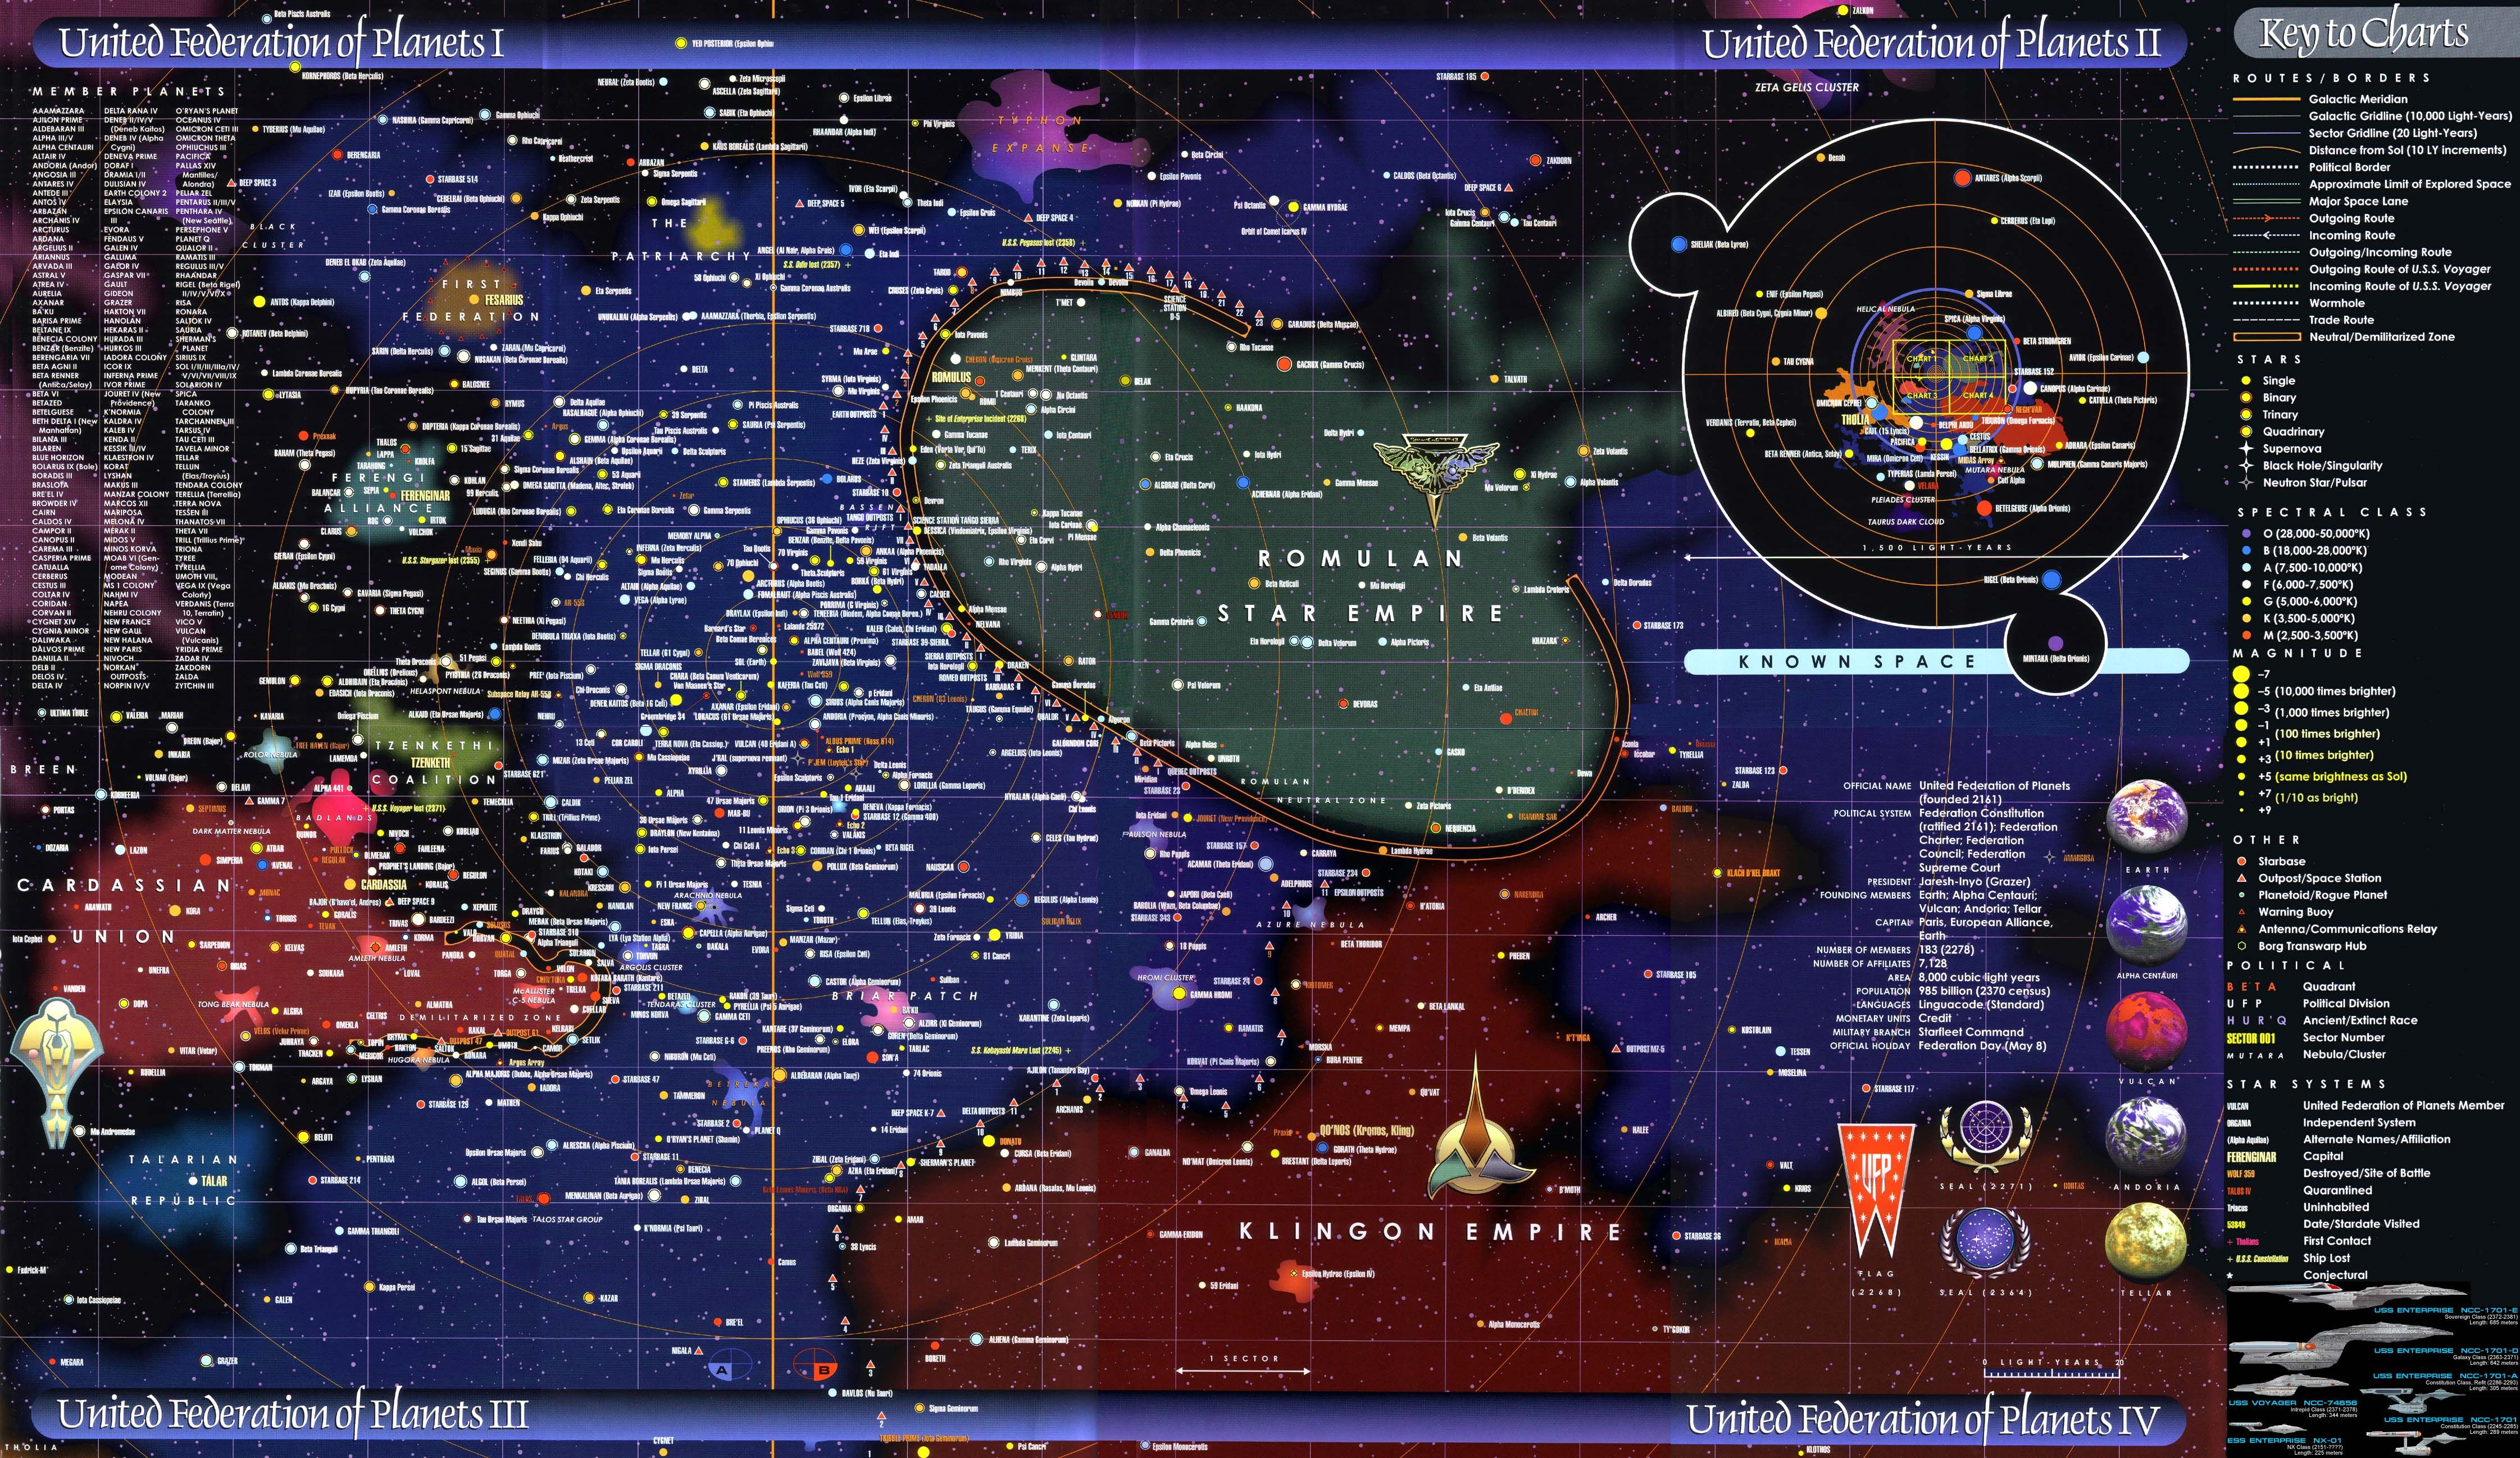 Federation Of Planets Iv Map Star Trek Their Maps Are Not